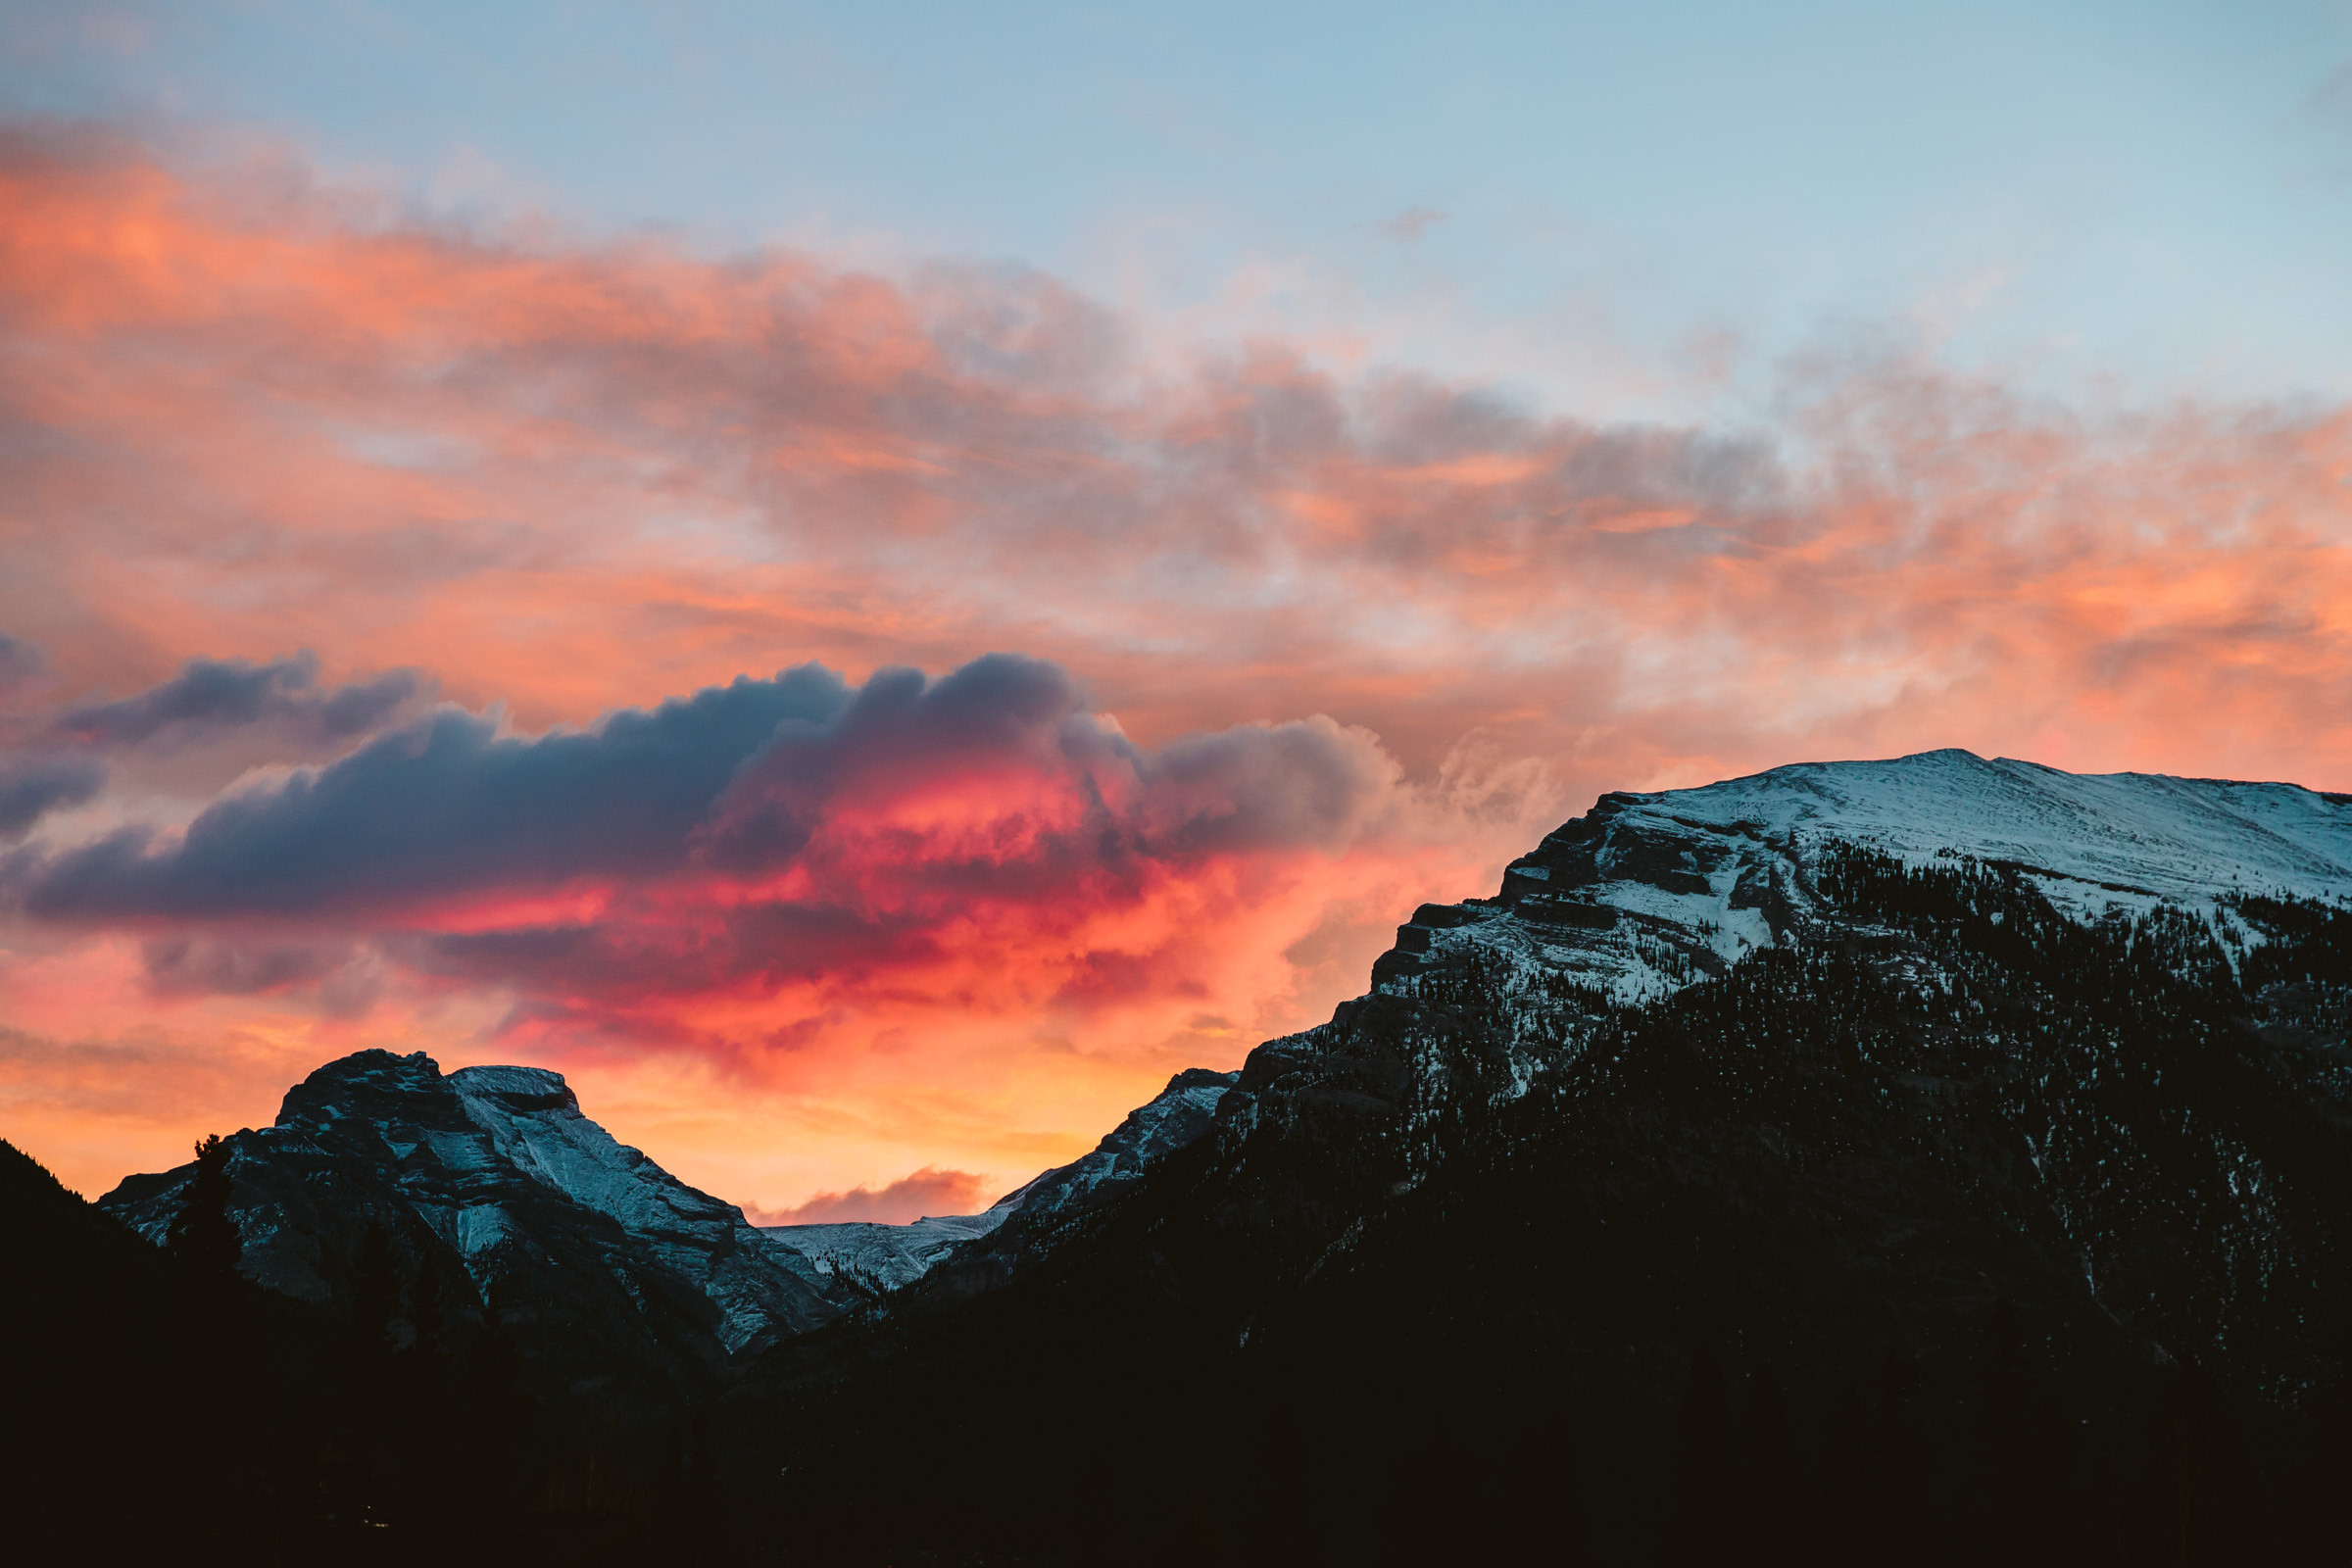 canada-alberta-lifestyle-photography-mikeseehagel-33